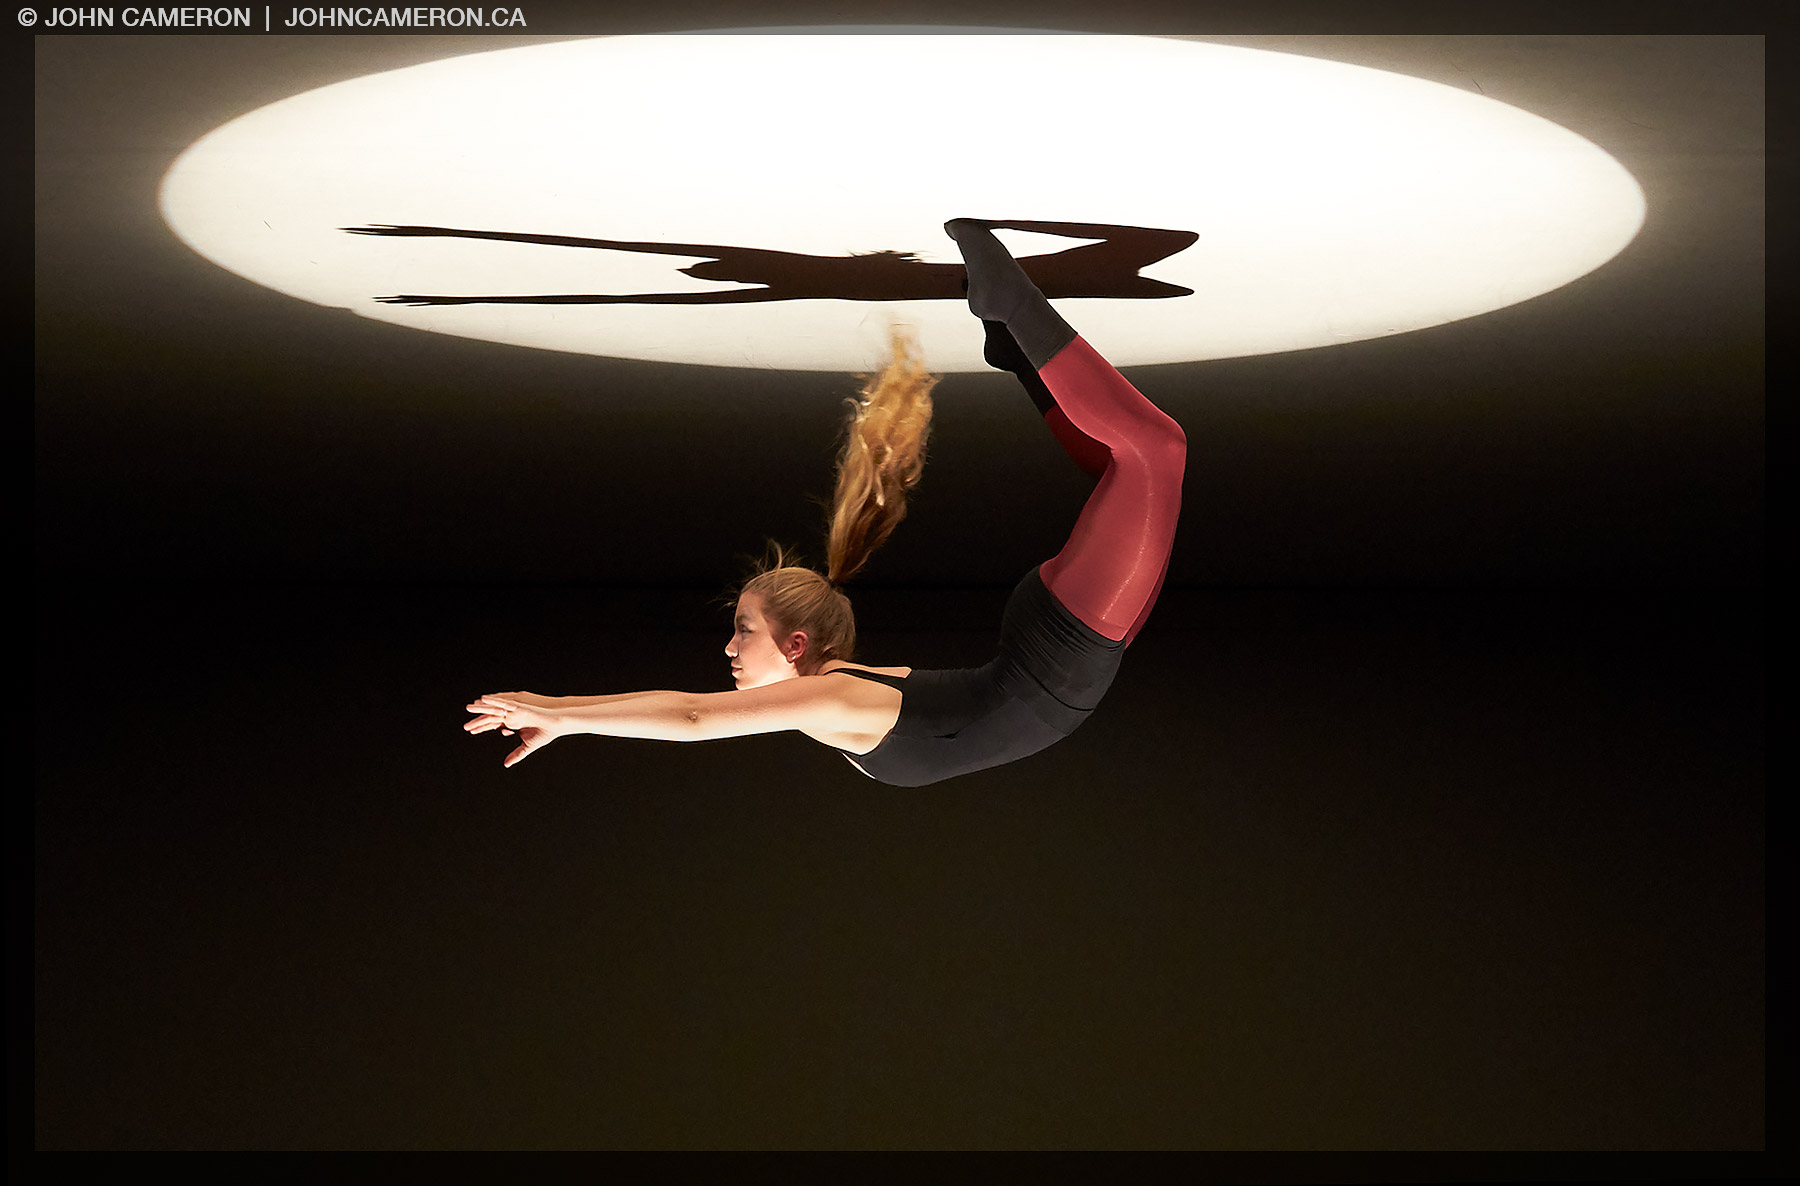 Dance at ArtSpring